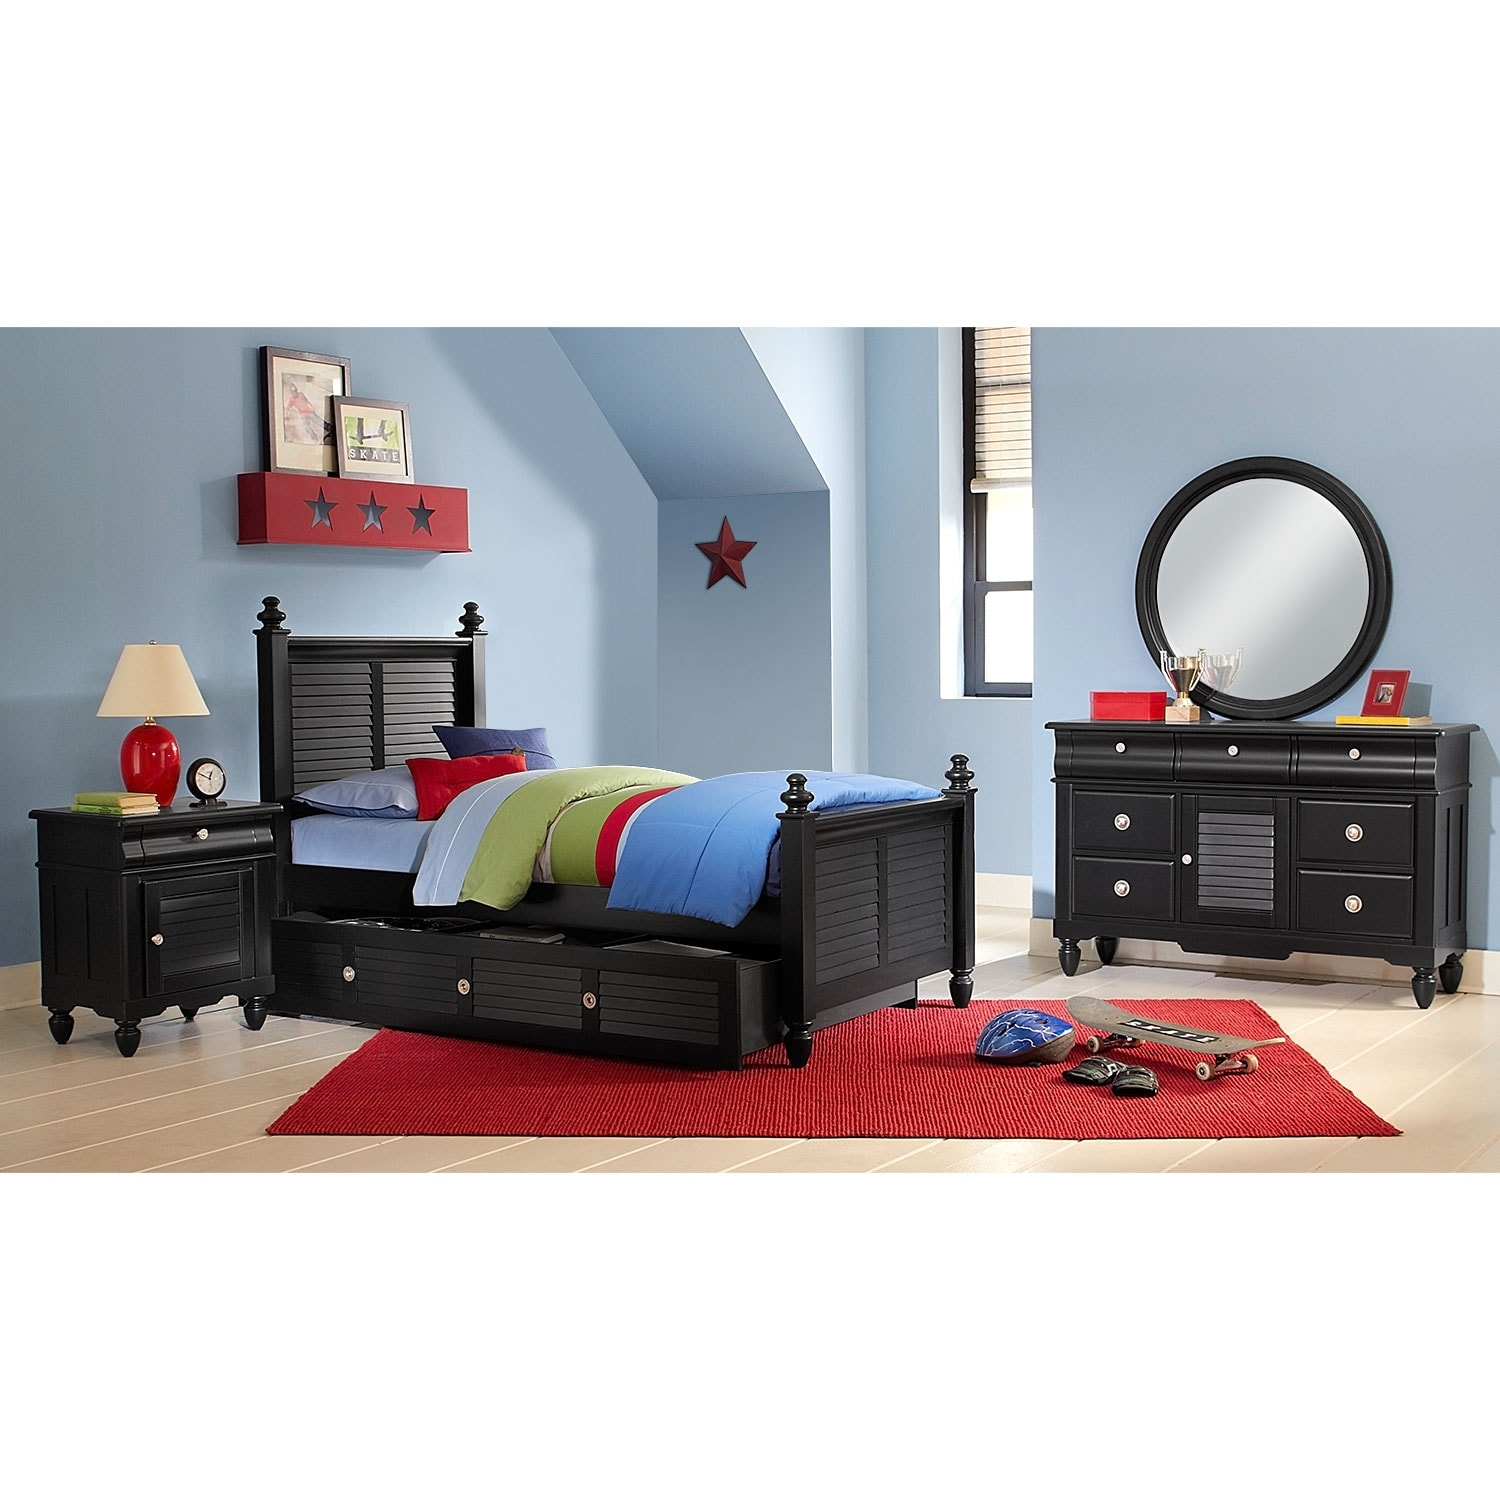 Kids Furniture - Seaside 7-Piece Twin Bedroom Set with Trundle - Black